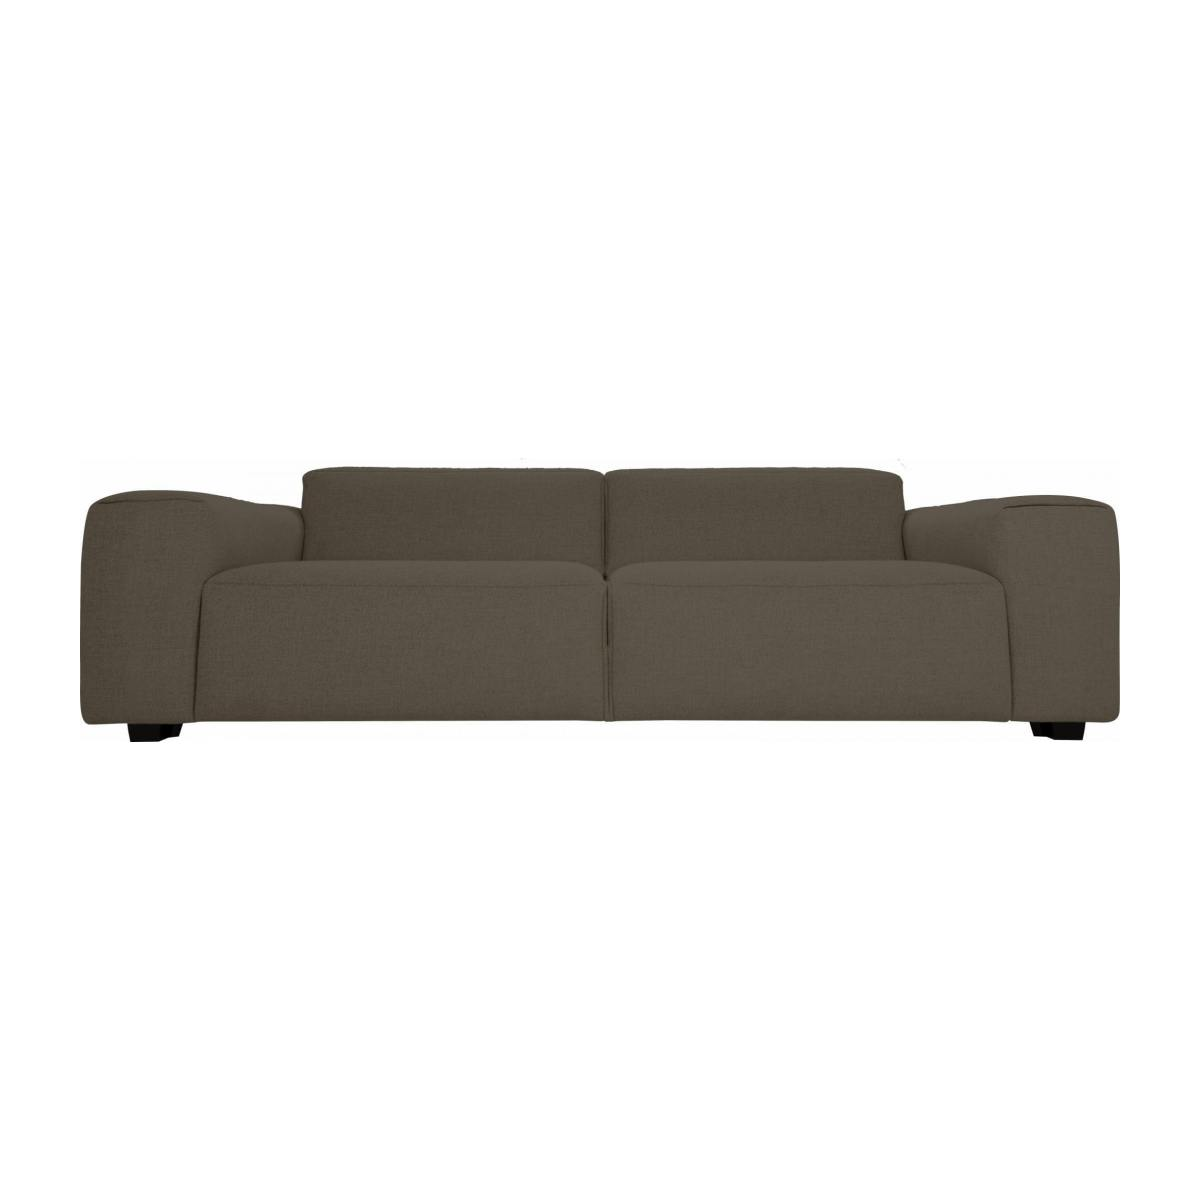 4 seater sofa in Lecce fabric, muscat n°1